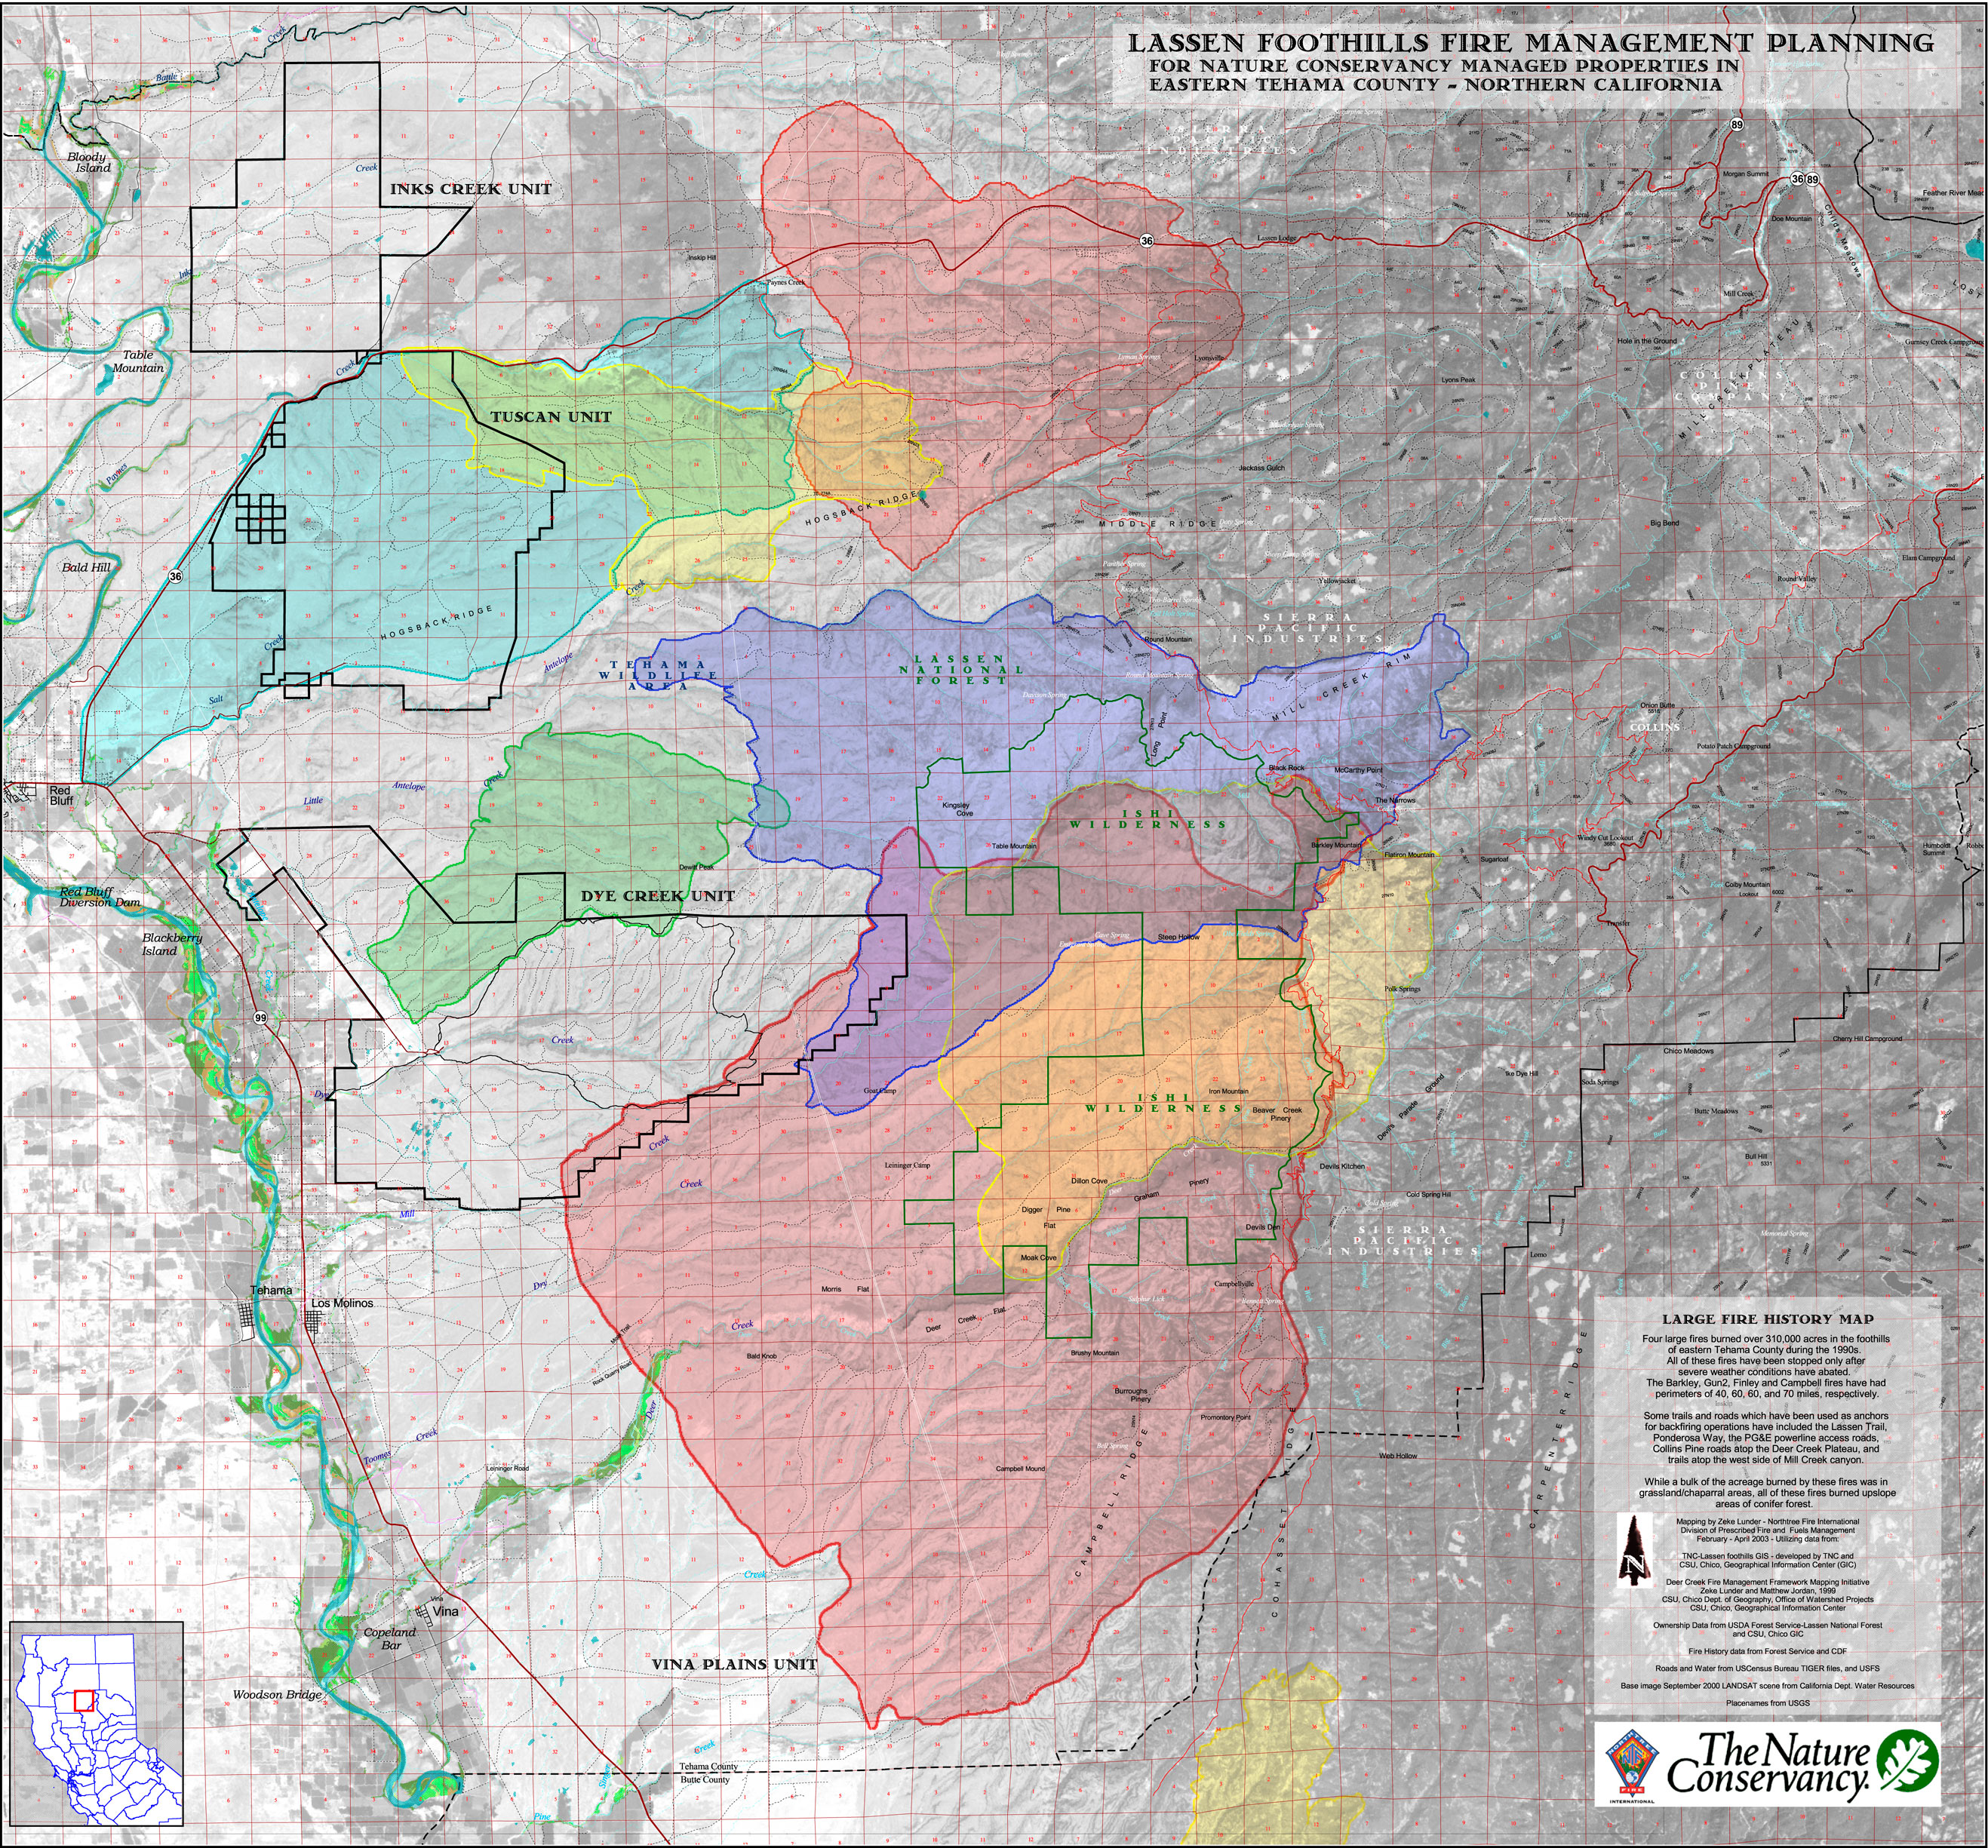 Current Fire Map Sonoma County.Projects Deer Creek Resources